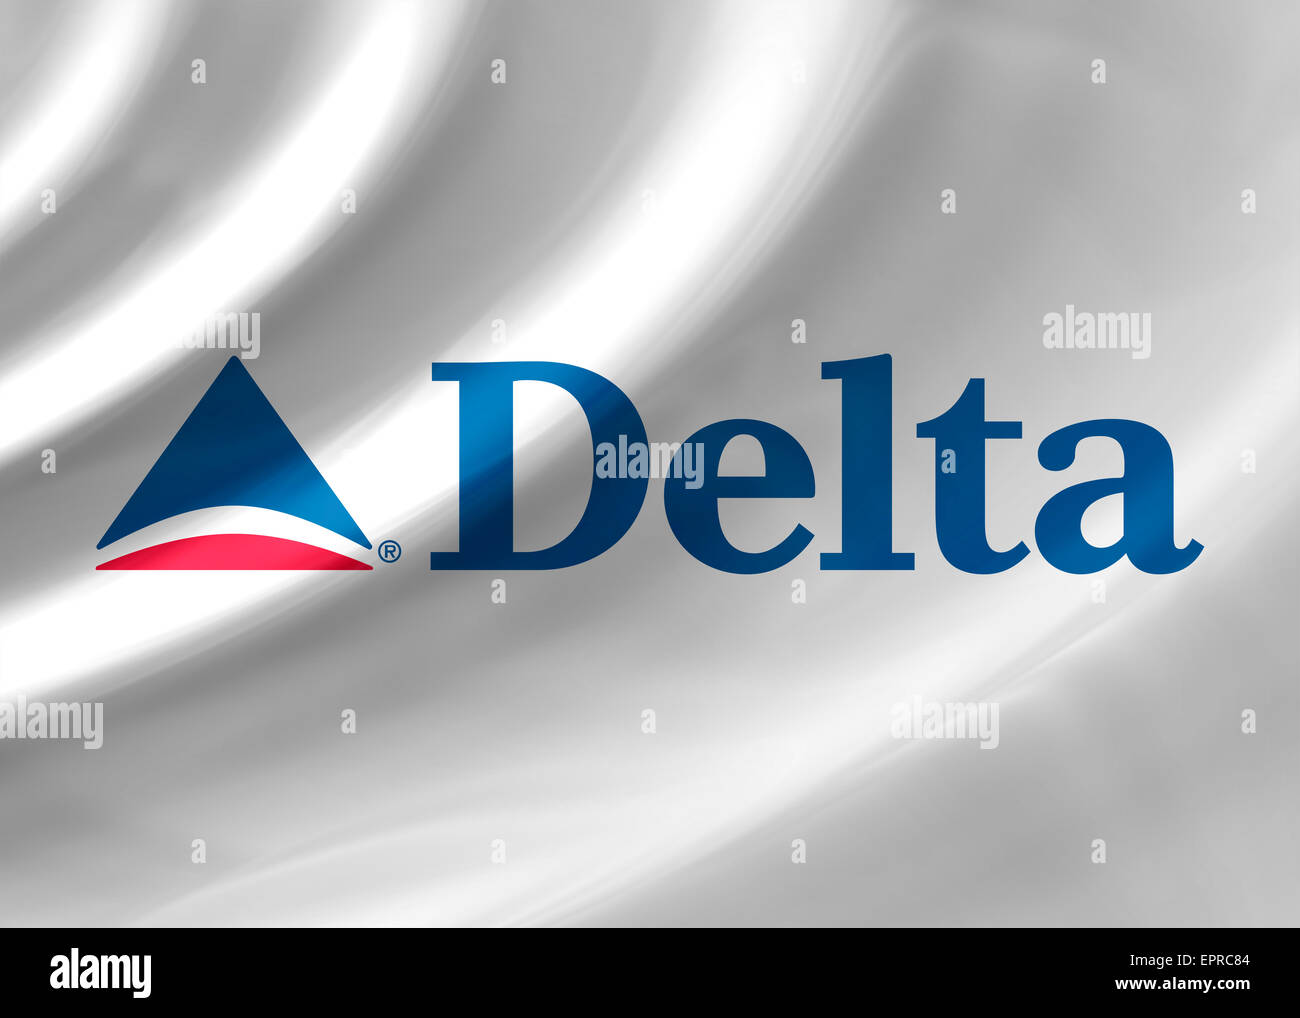 Delta airlines stock symbol gallery symbols and meanings delta airlines logo icon flag symbol emblem sign stock photo delta airlines logo icon flag symbol buycottarizona Choice Image